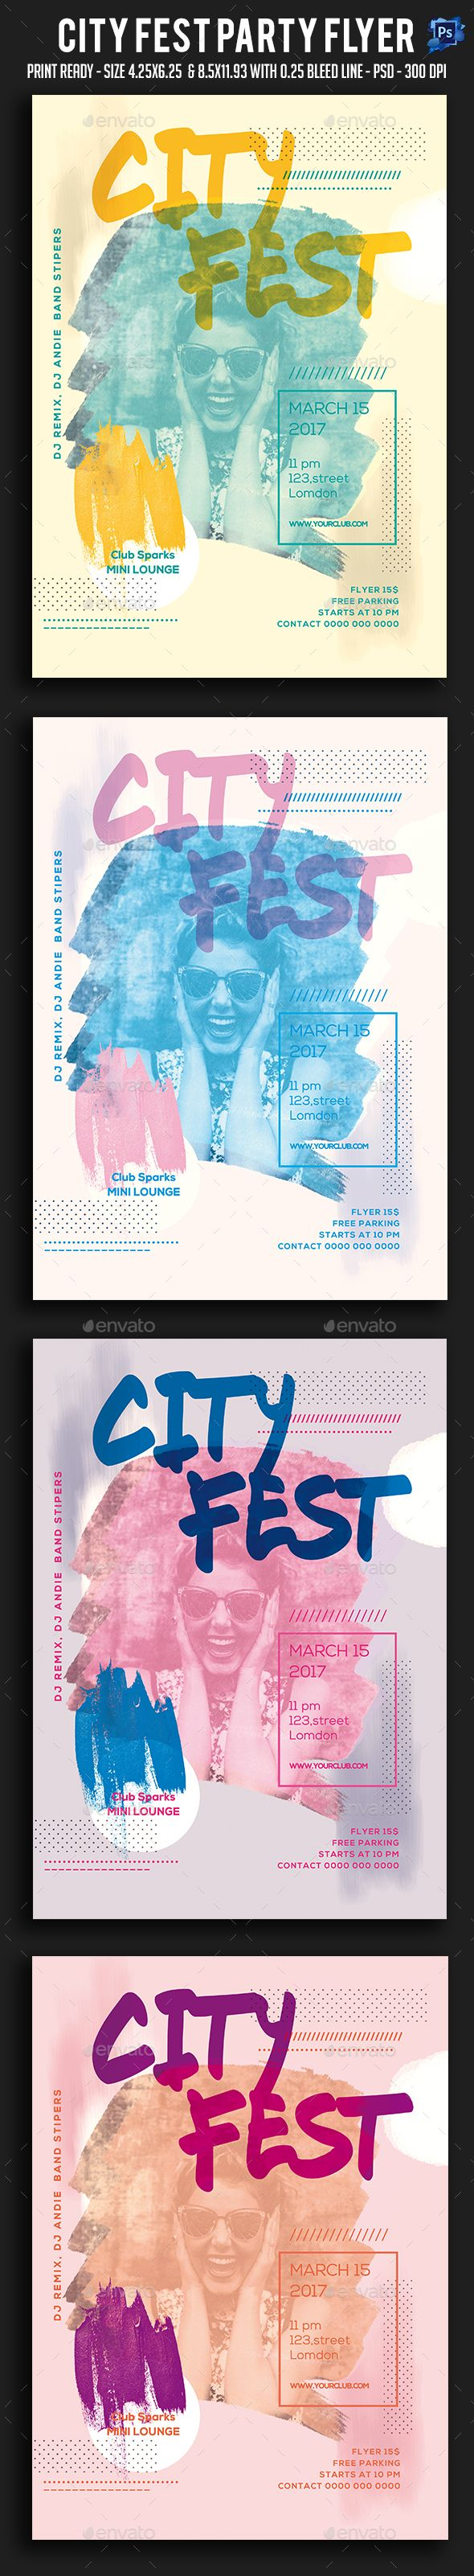 City Fest Party Flyer Template PSD